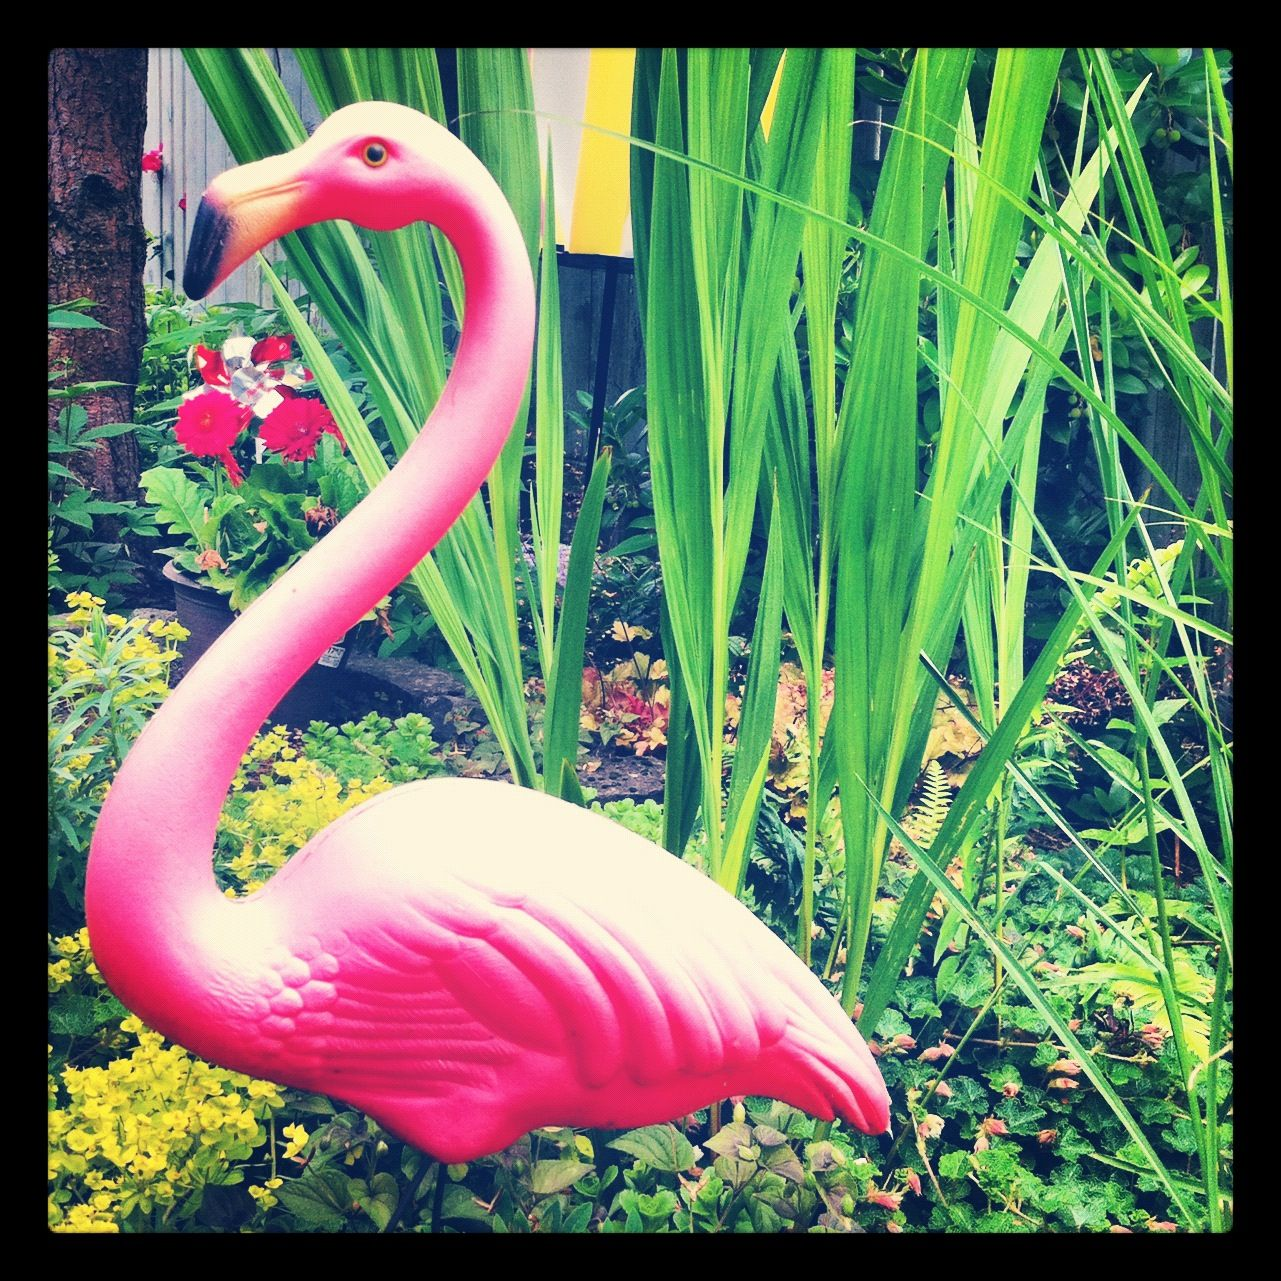 Spike, the watchflamingo, ever diligent.